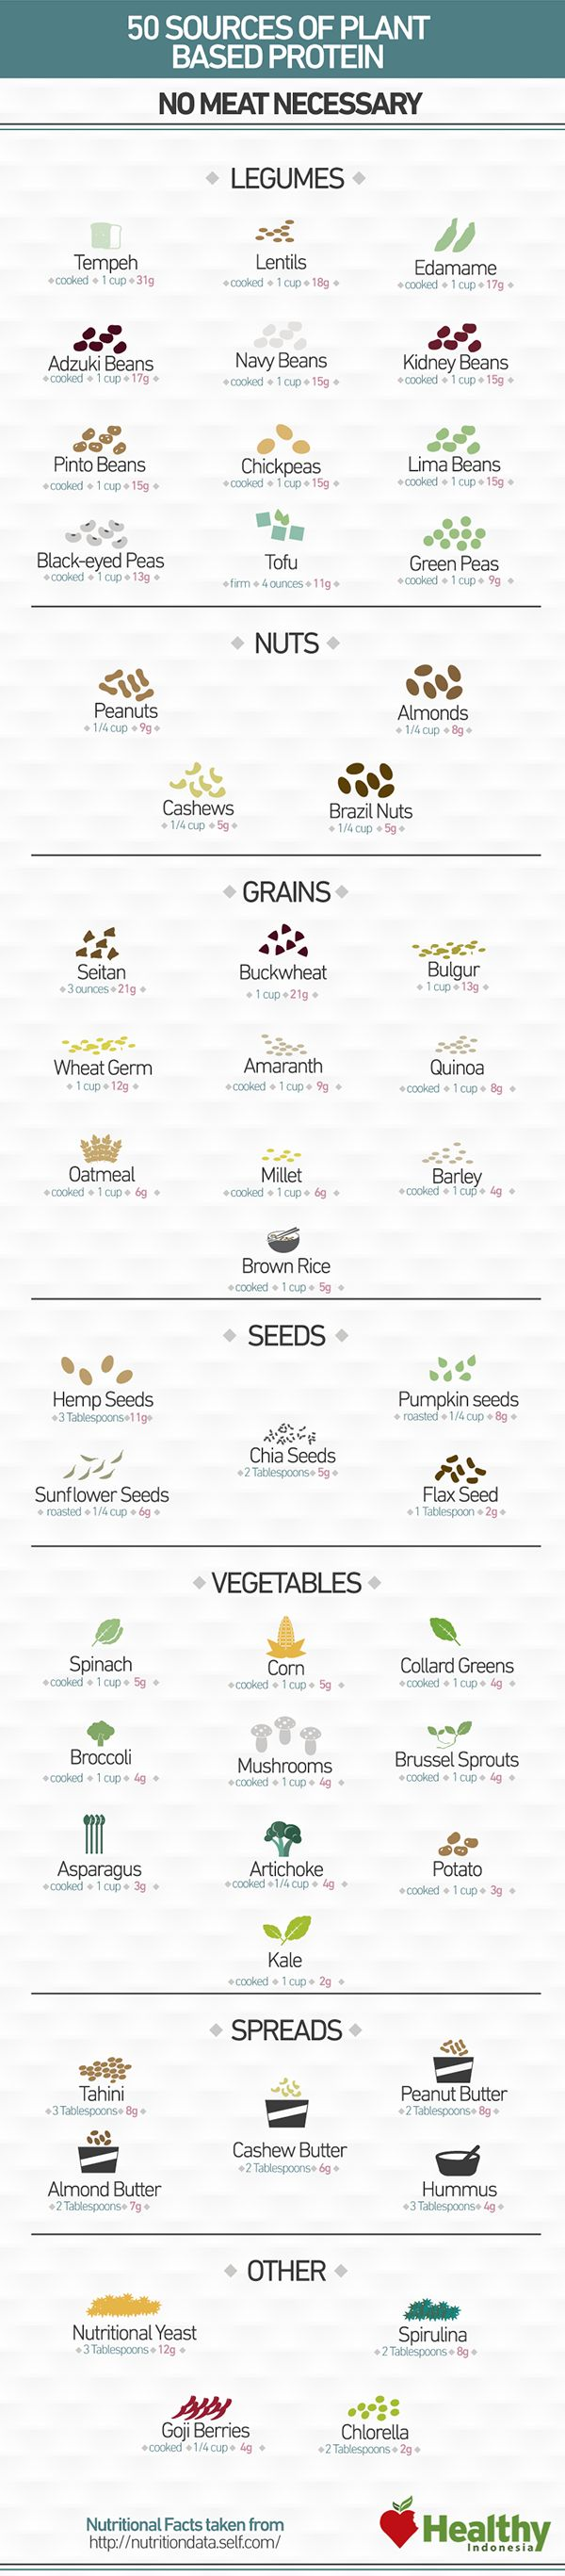 50 Sources of Meatless Proteins